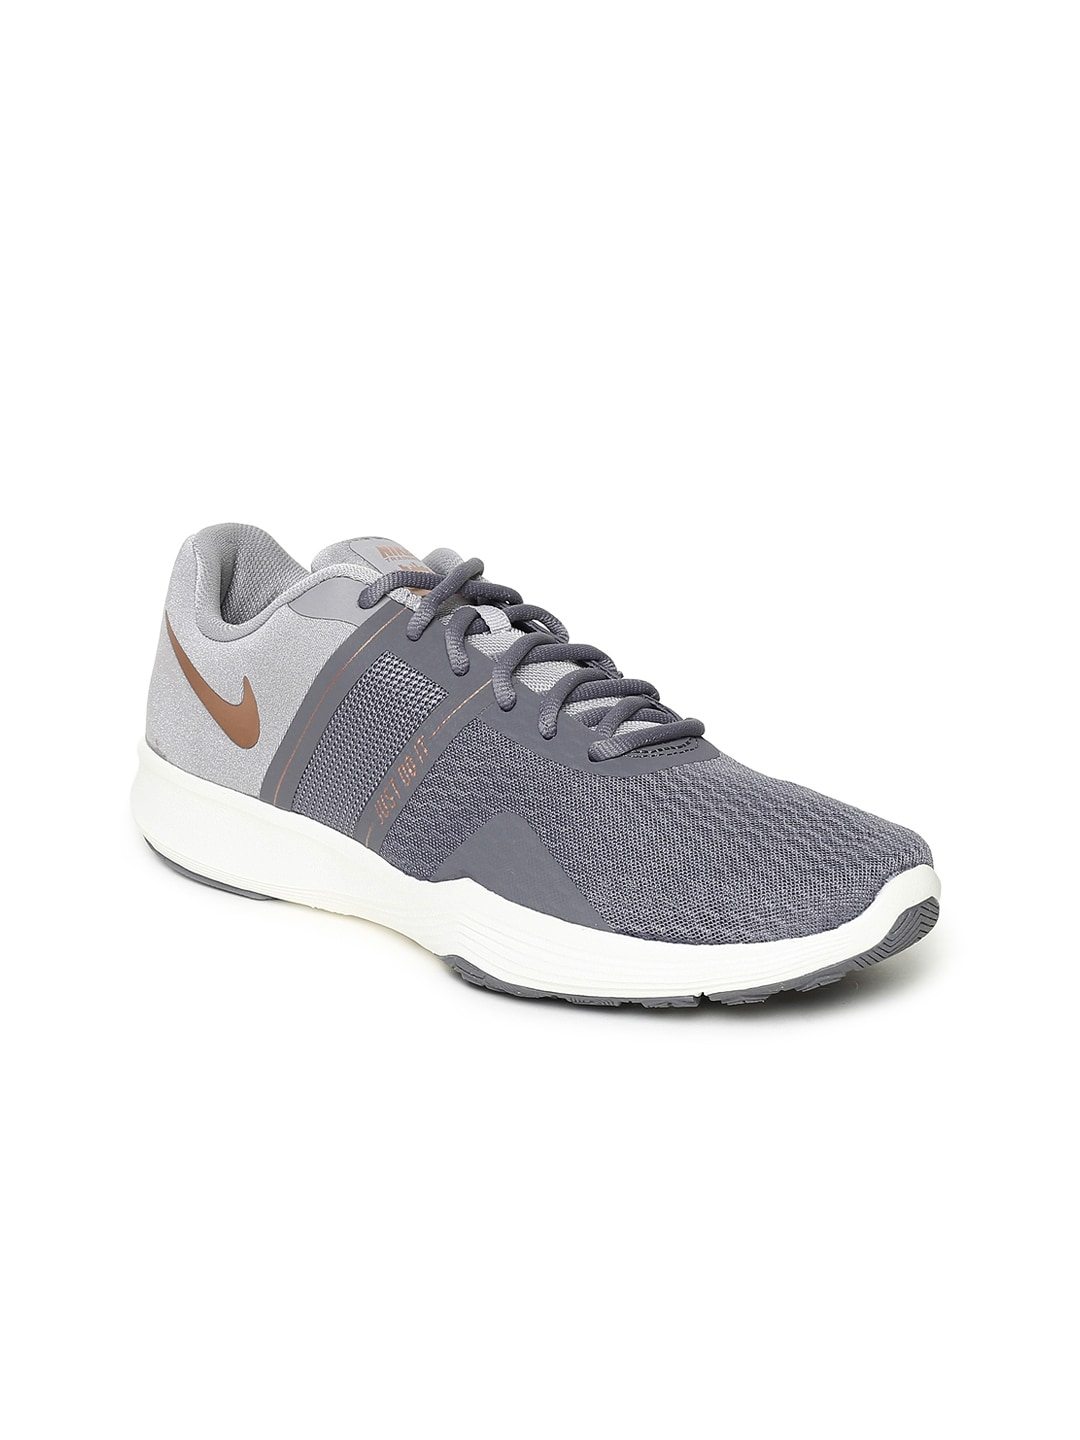 c82a72c953e2a Women s Nike Shoes - Buy Nike Shoes for Women Online in India